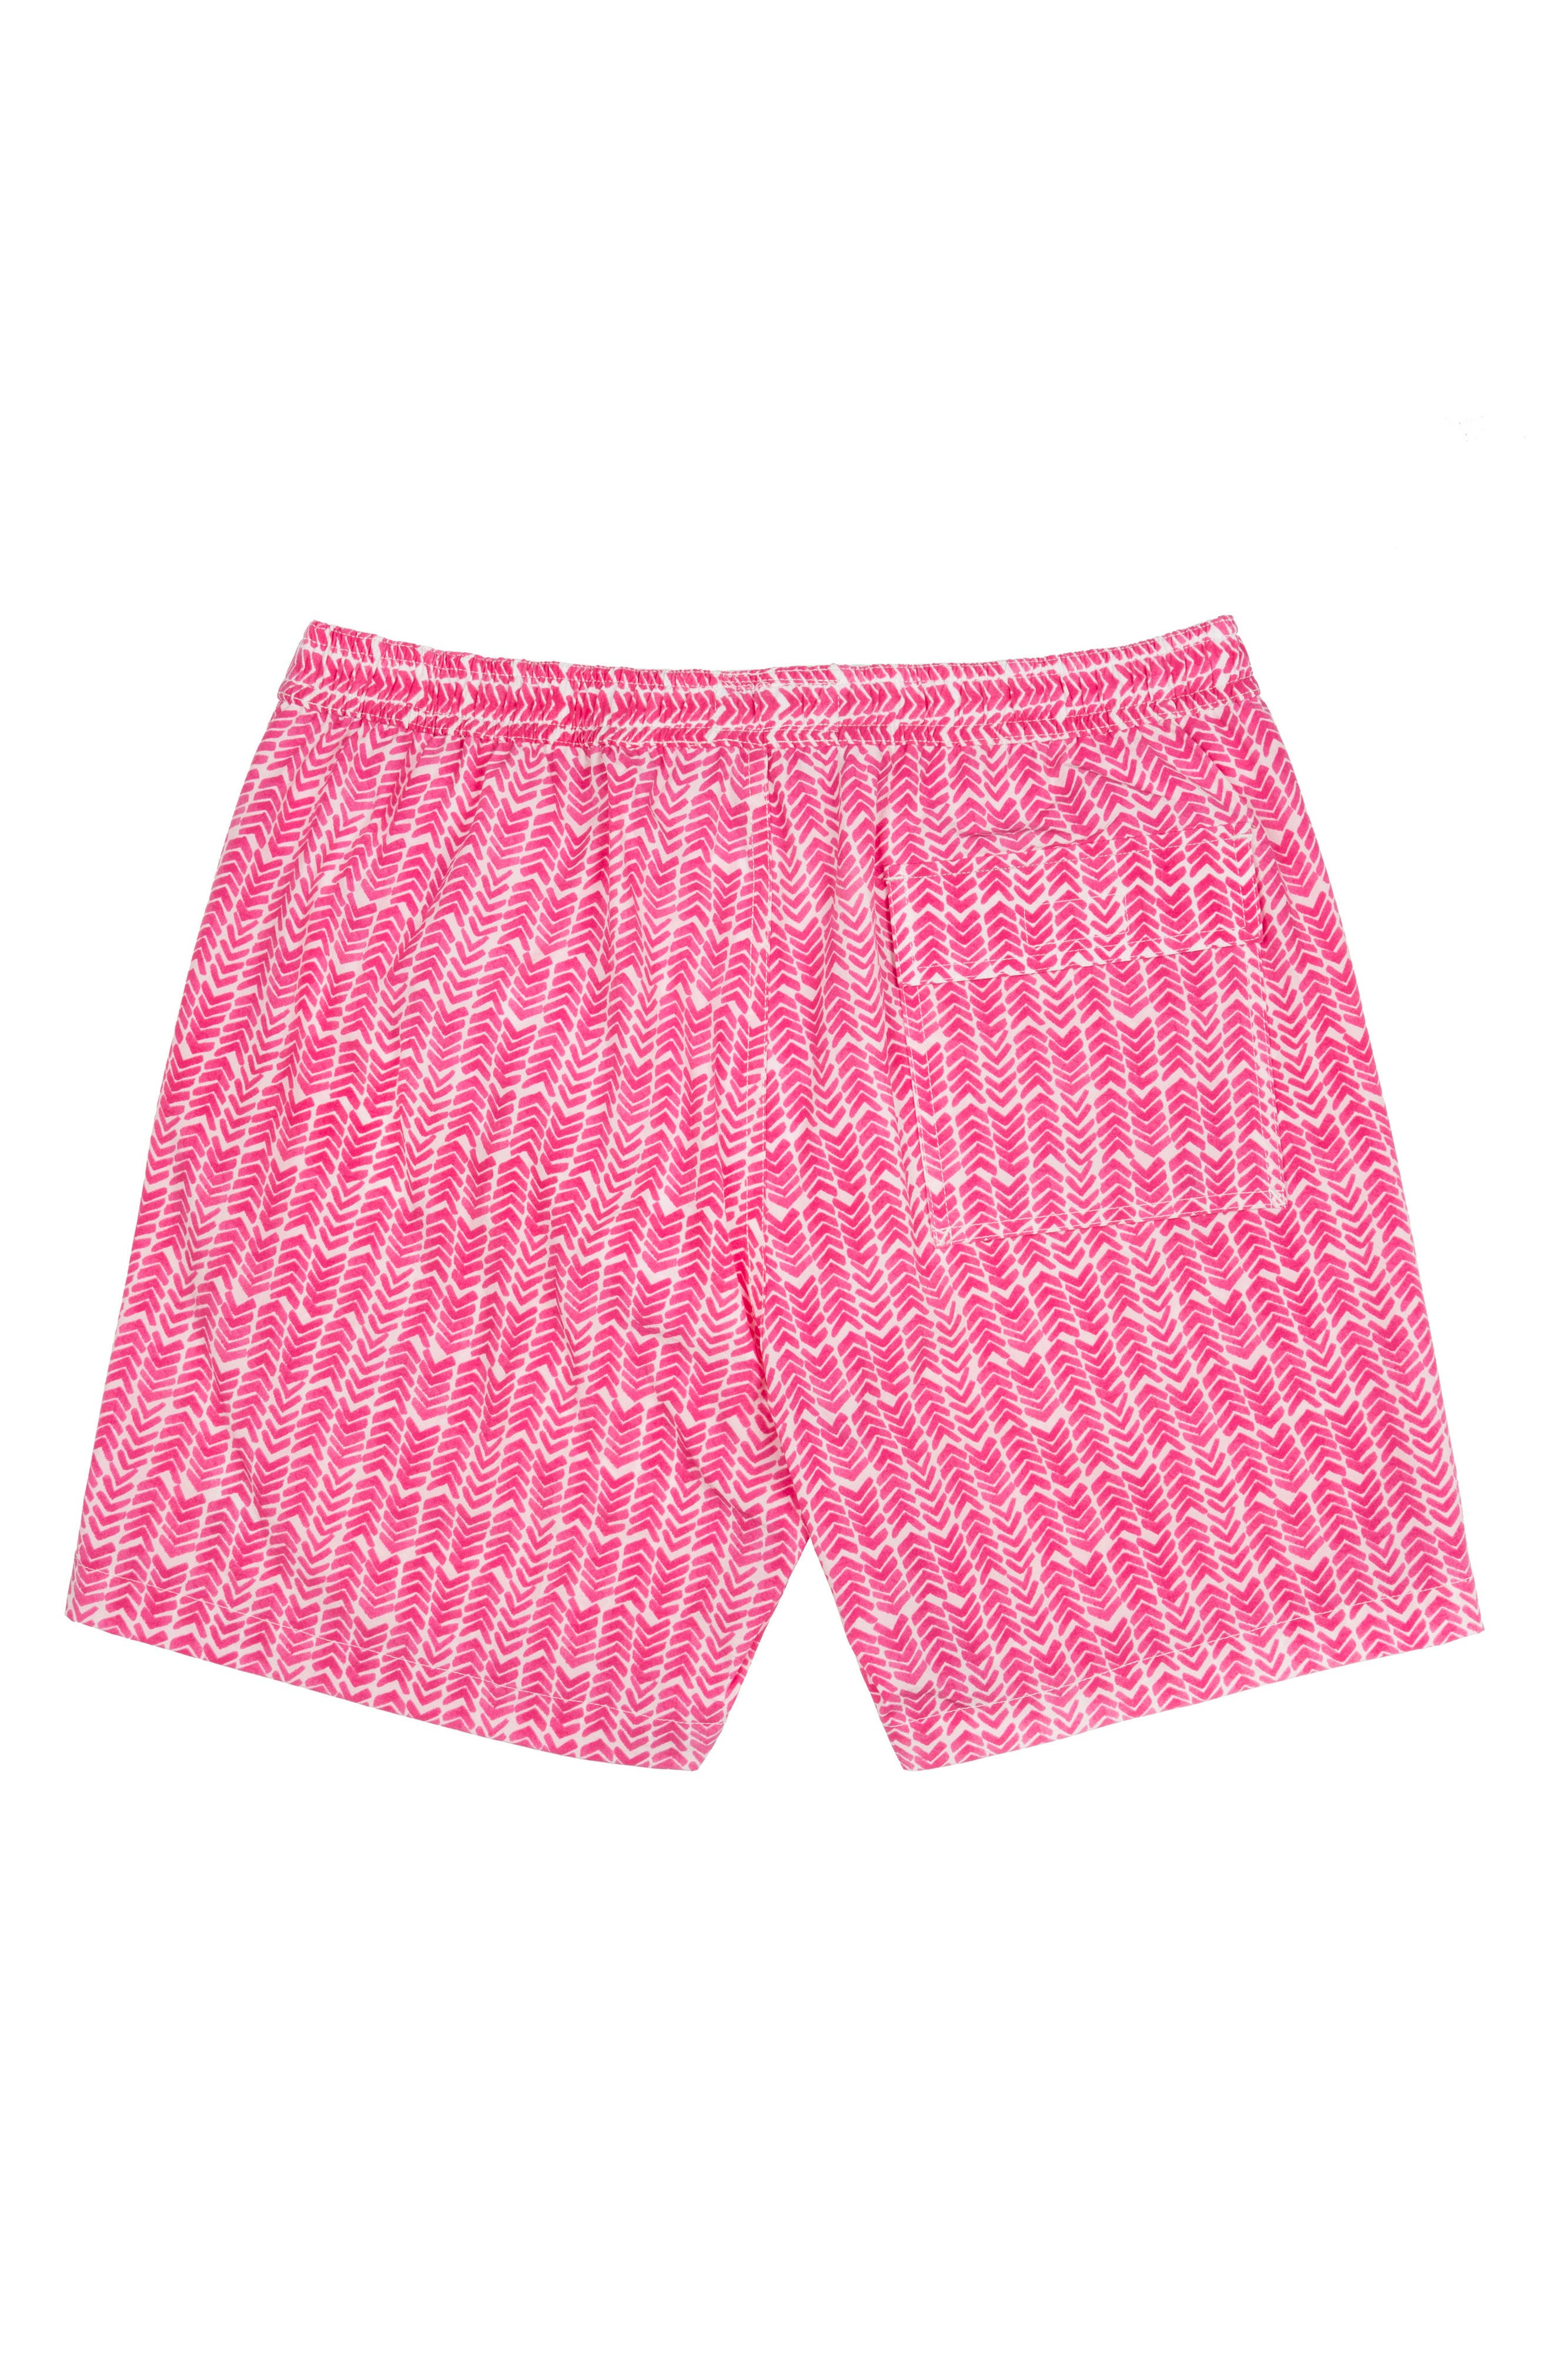 Psycho Bunny Drippy Diamond Swim Trunks (Little Boys & Big Boys)